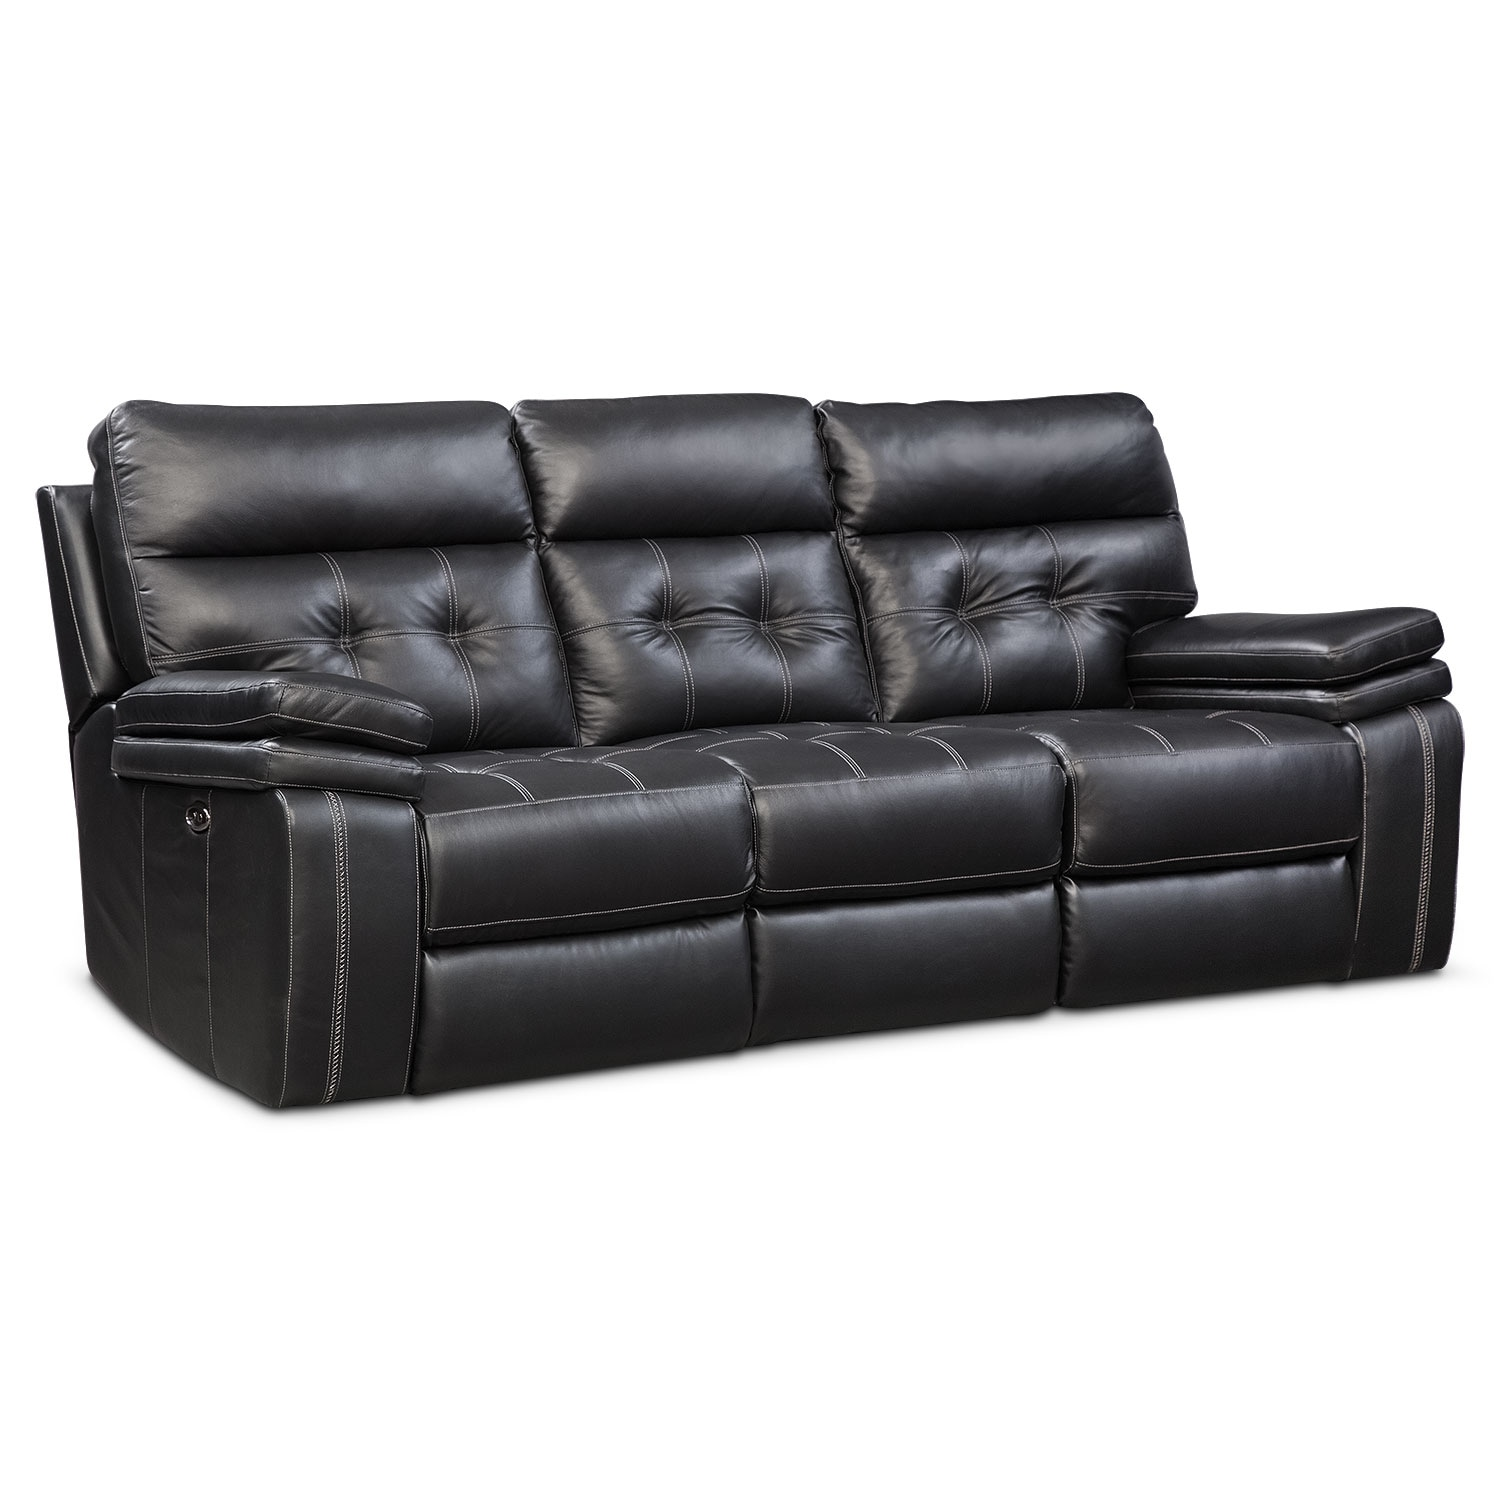 Brisco Power Reclining Sofa Black